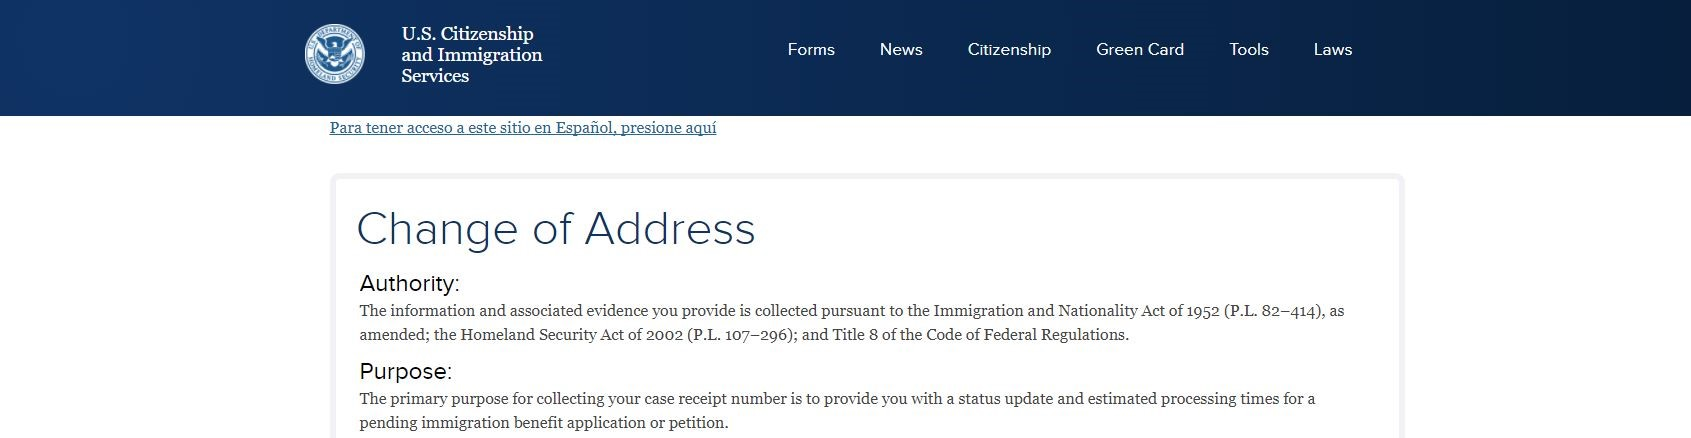 Changing your address with the USCIS can be done online.